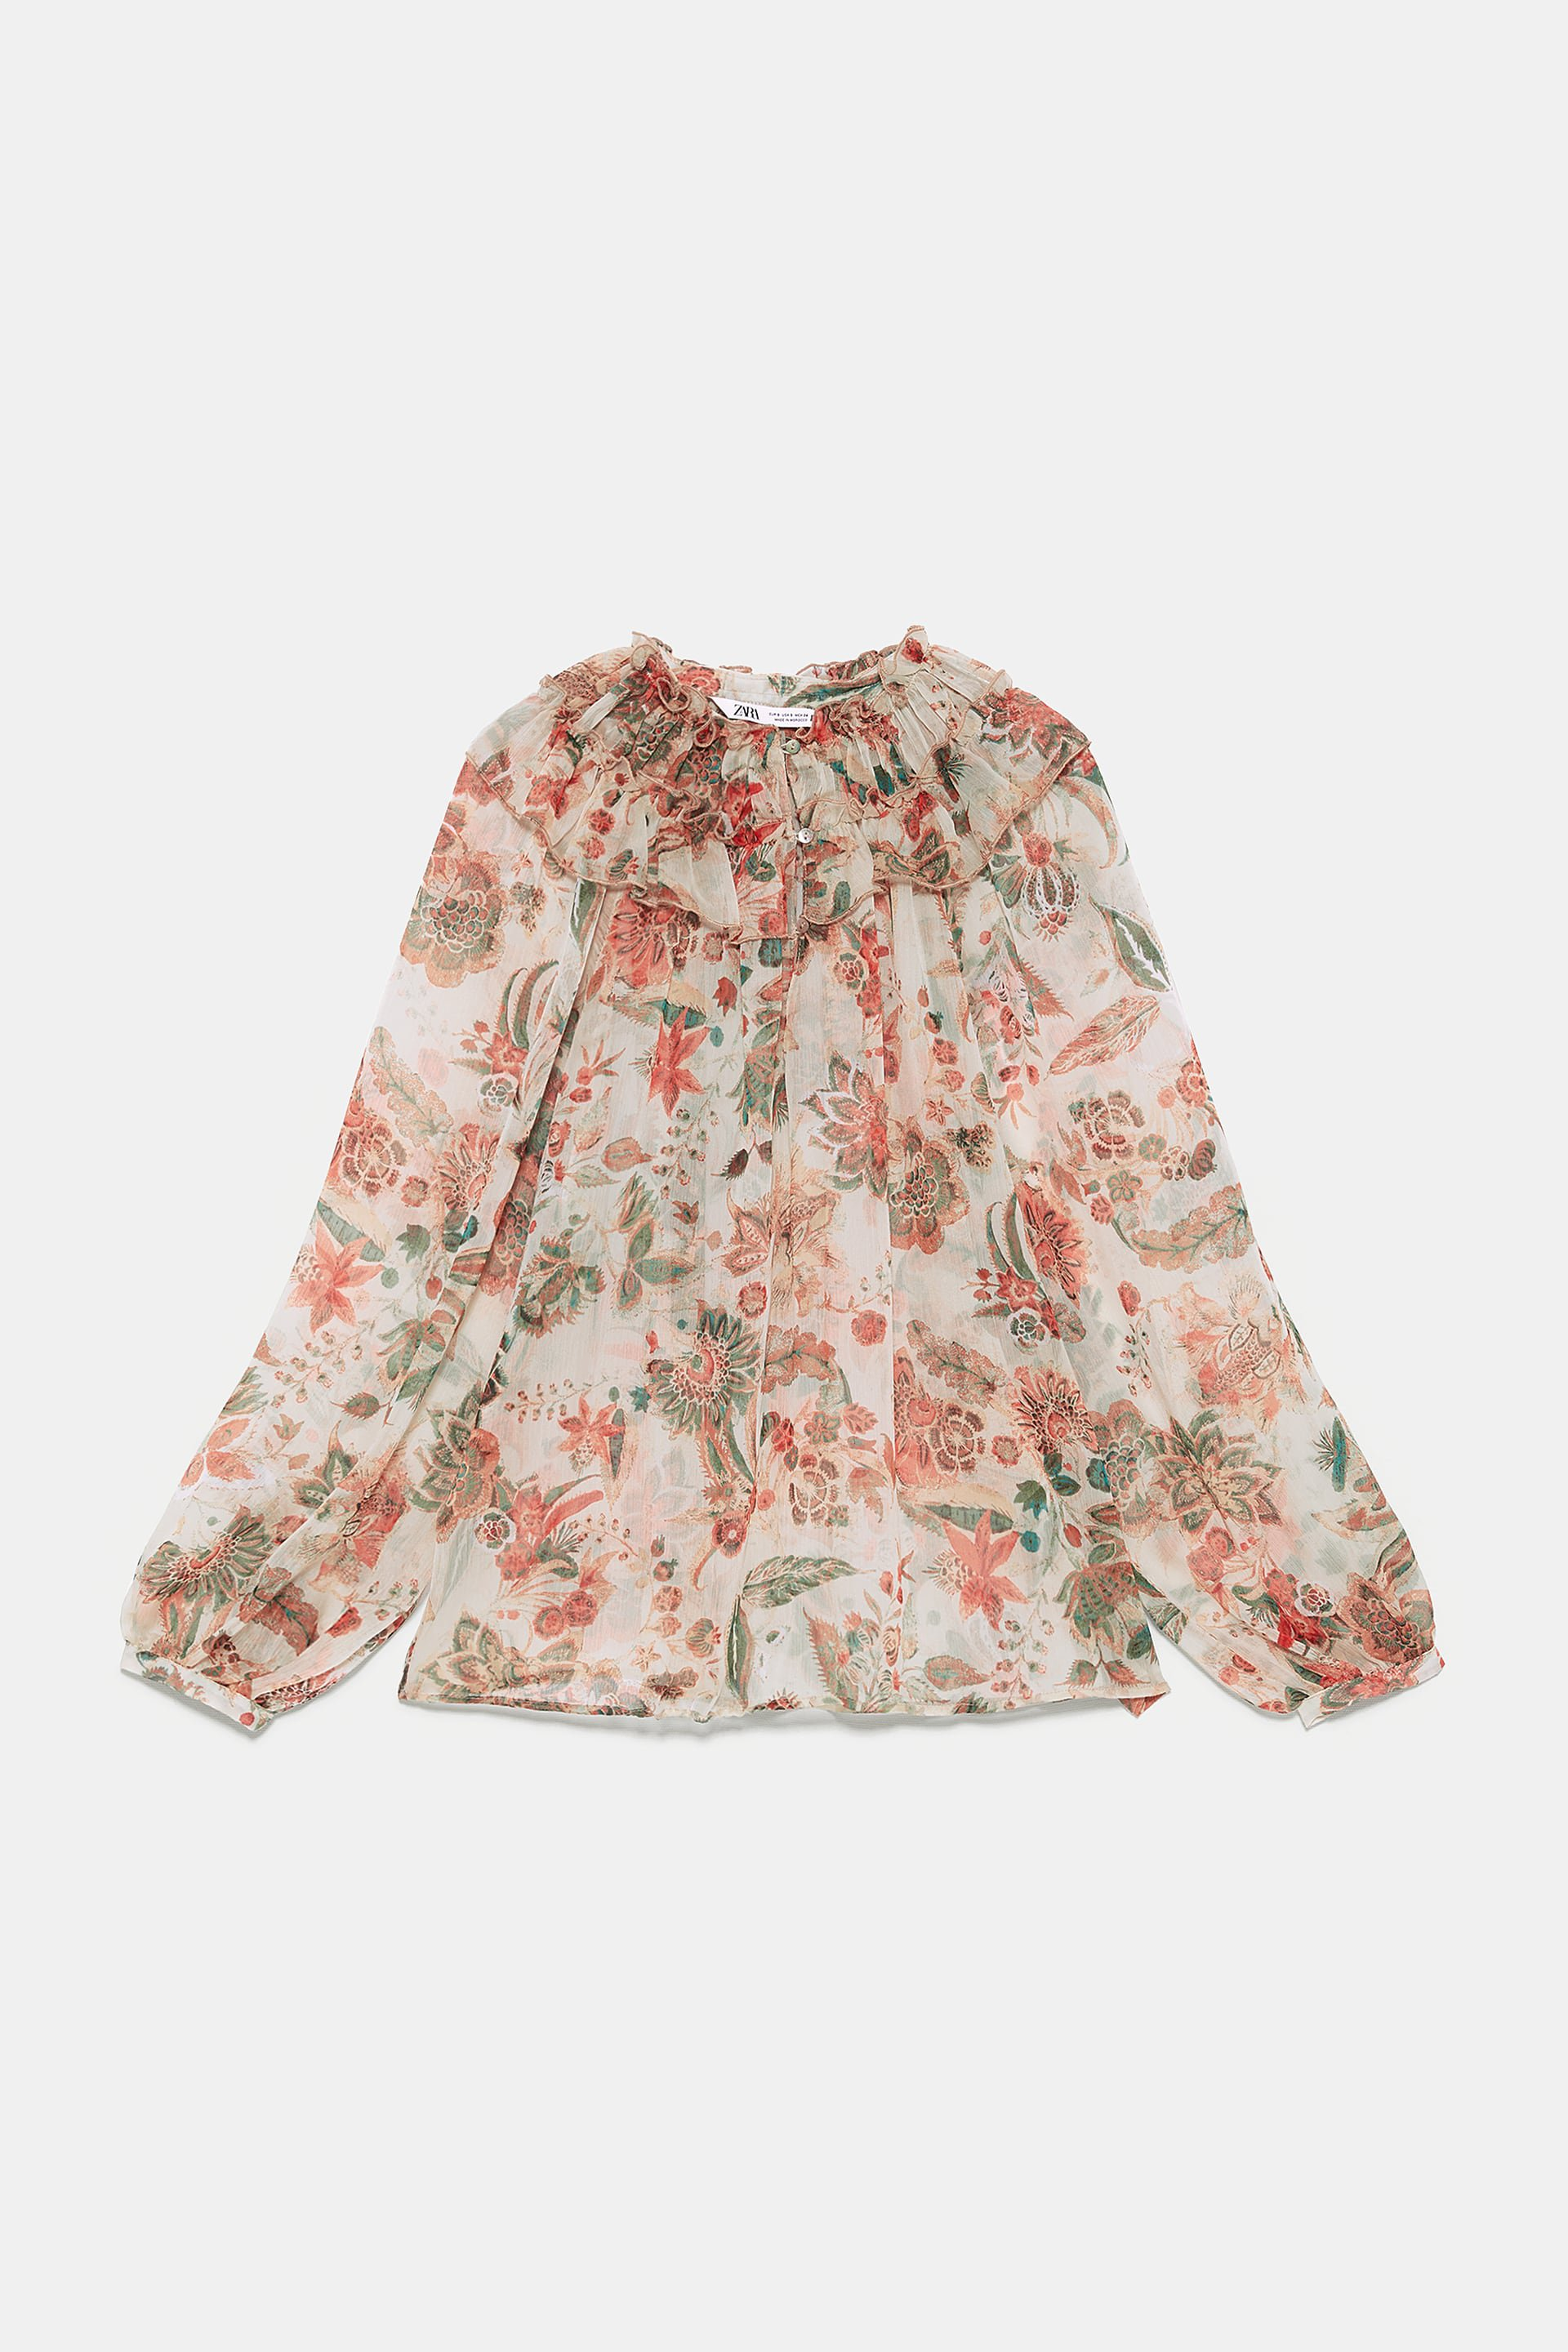 FLORAL PRINT BLOUSE WITH RUFFLE - View All-SHIRTS | BLOUSES-WOMAN | ZARA United States